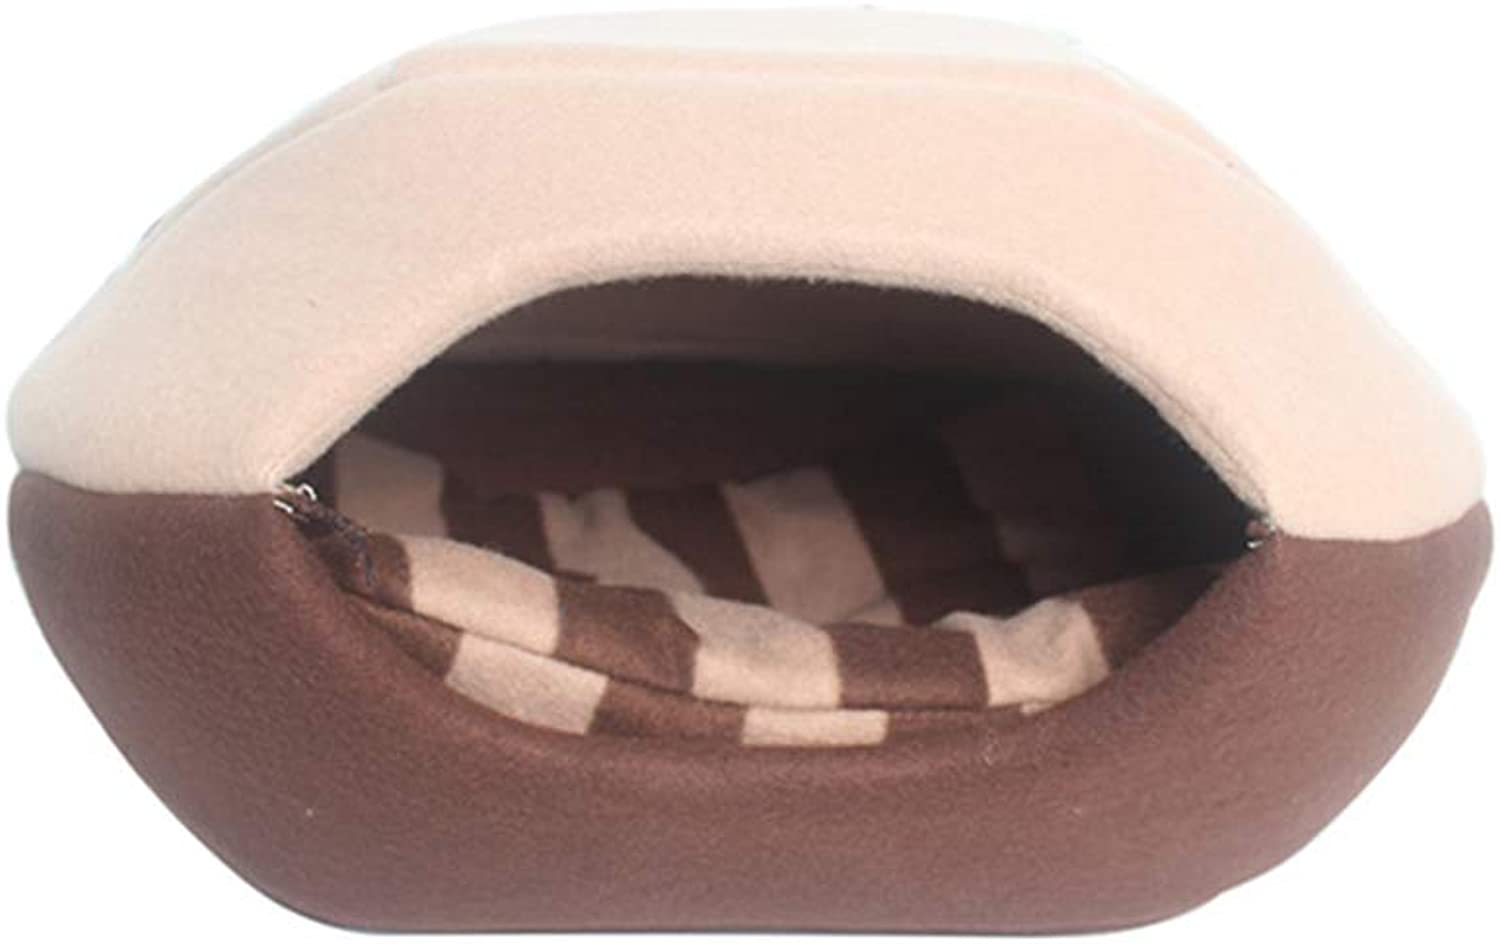 Luxury Pet Home,Sleep Zone Cuddle Cave Pet Bed for Cat Dogs House(L(51X43X37CM),B)